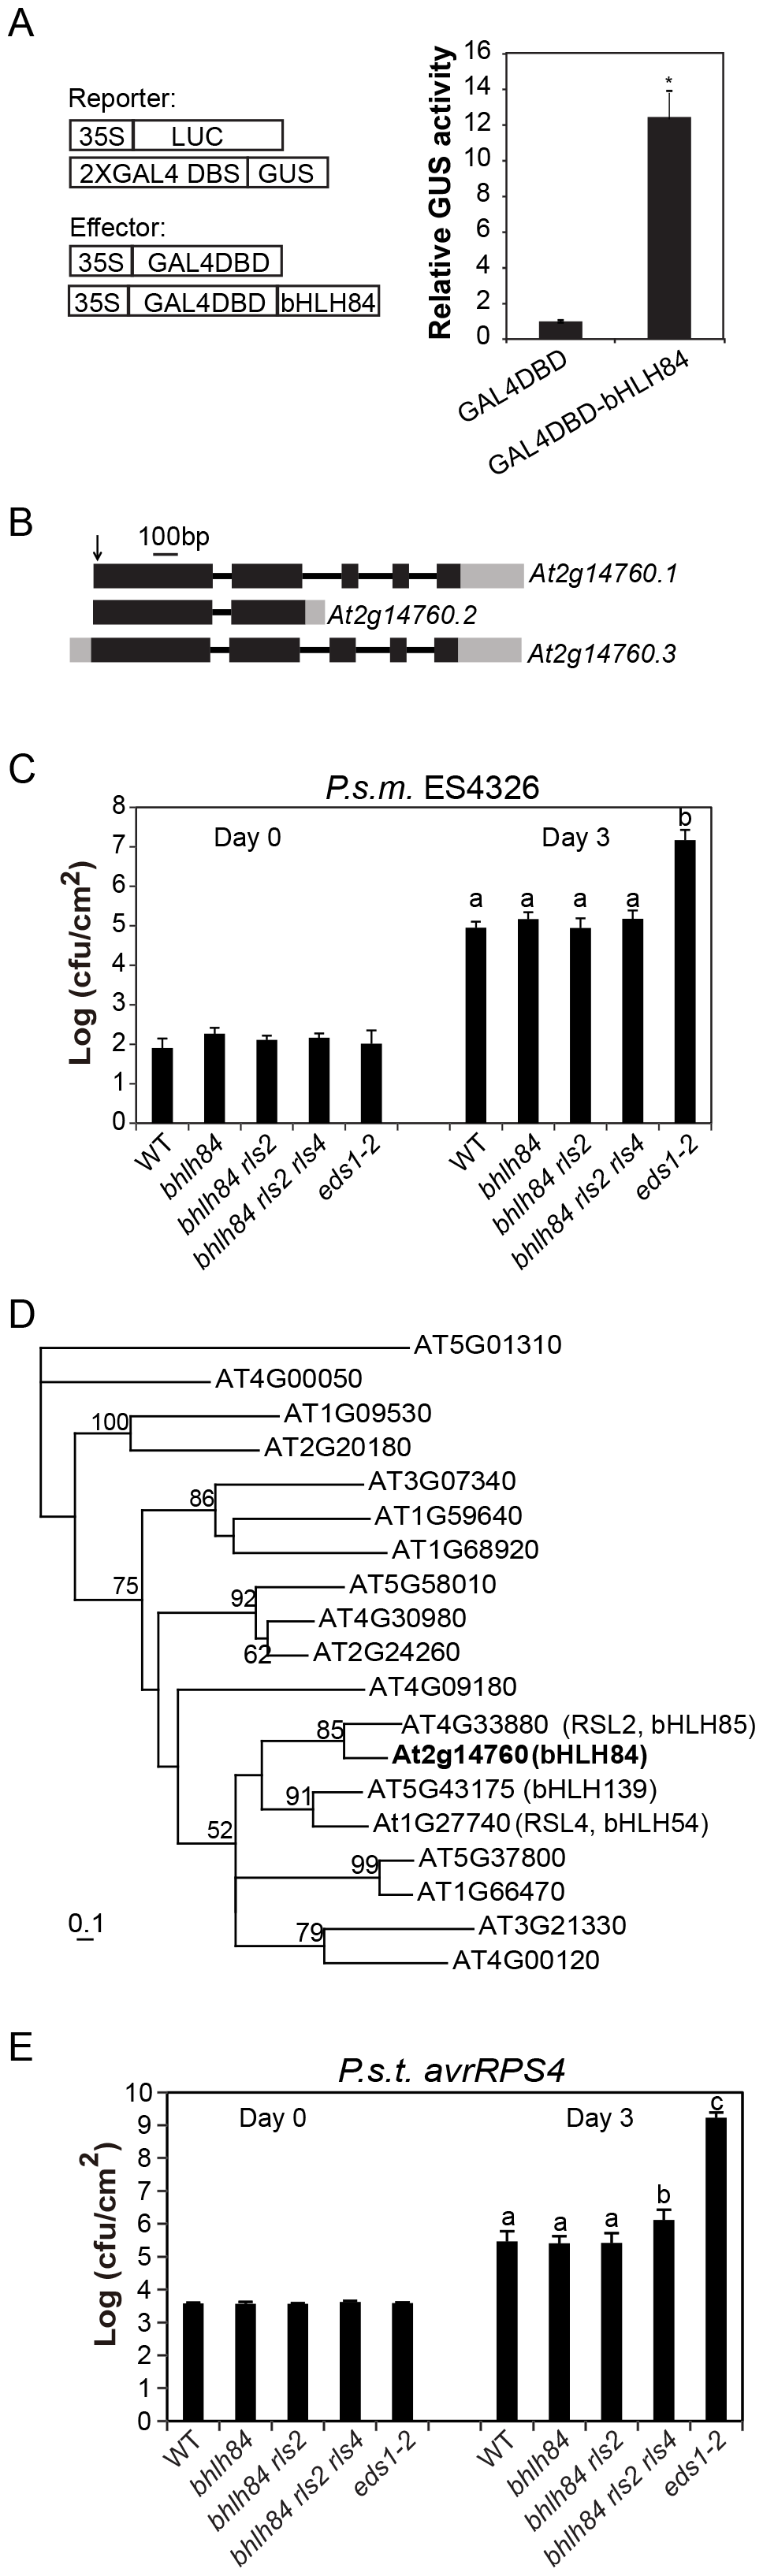 Mutant analysis of transcriptional activator <i>bHLH84</i> and its paralogs.